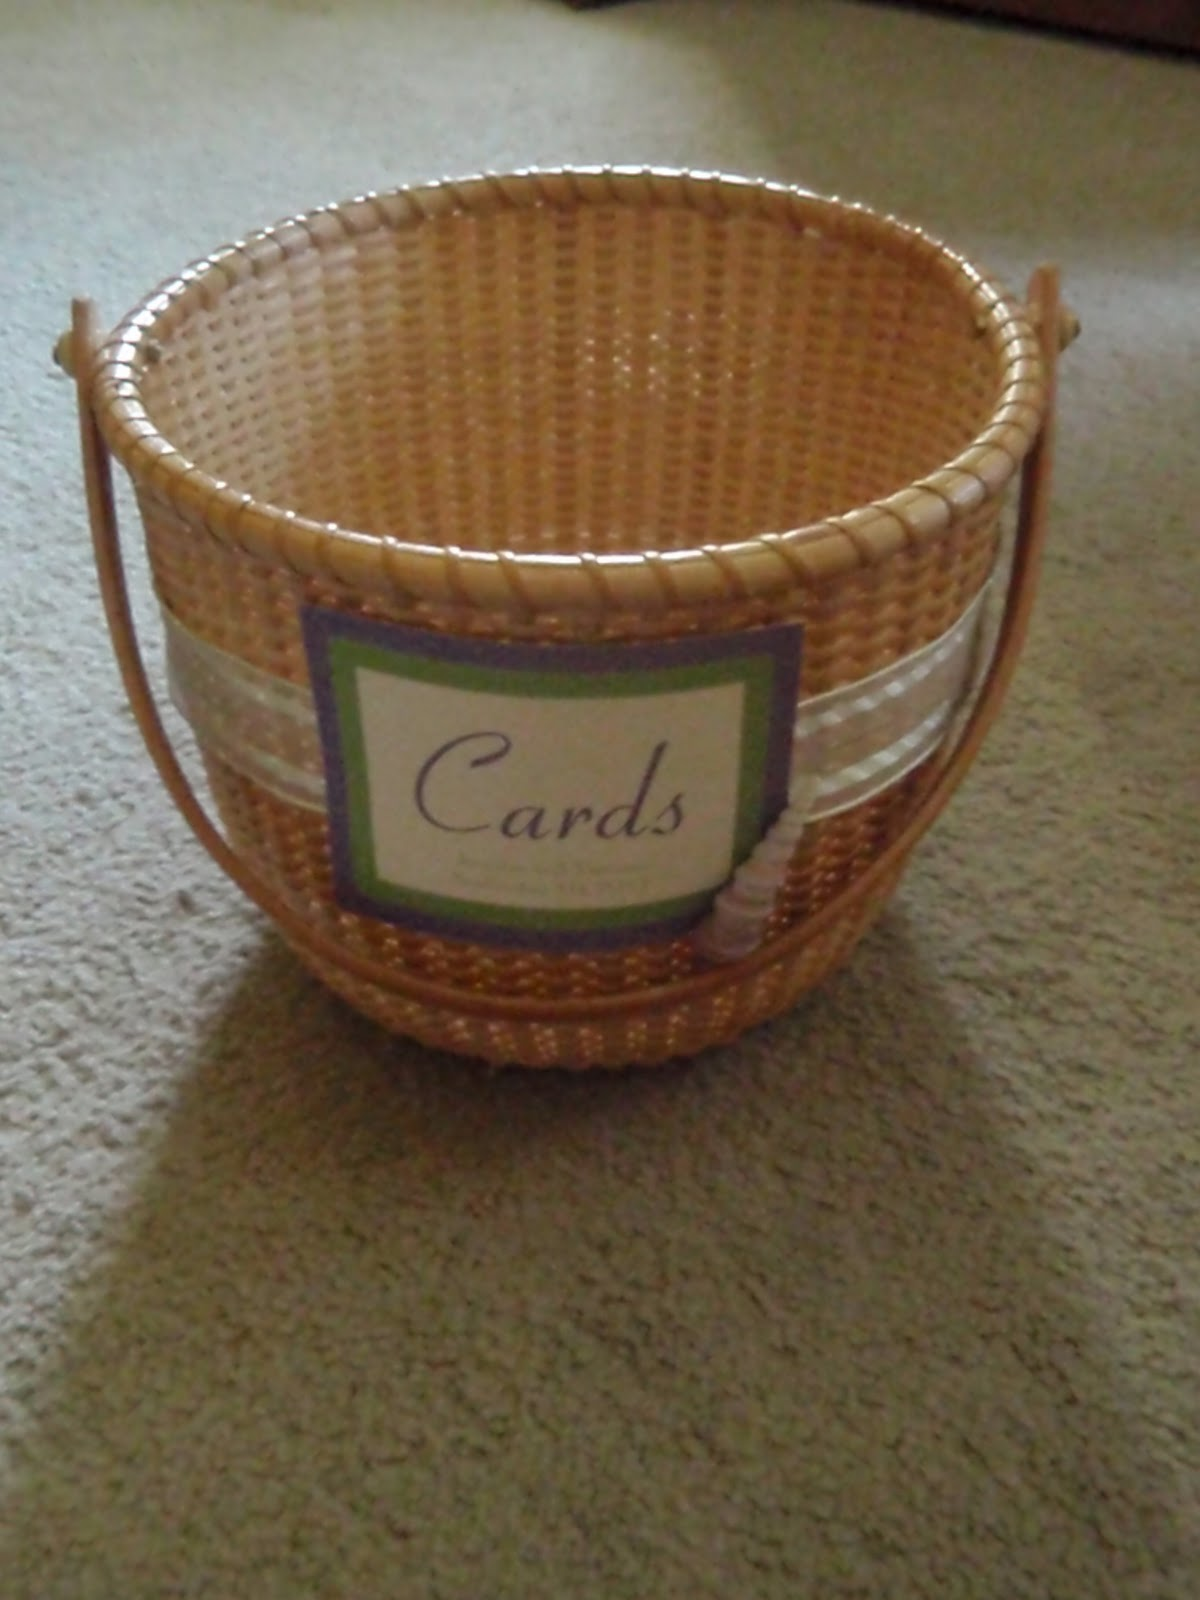 Basket For Wedding Gift Cards : ... Day (In the Making): DIY Card Basket and Preventing Wedding Gift Theft